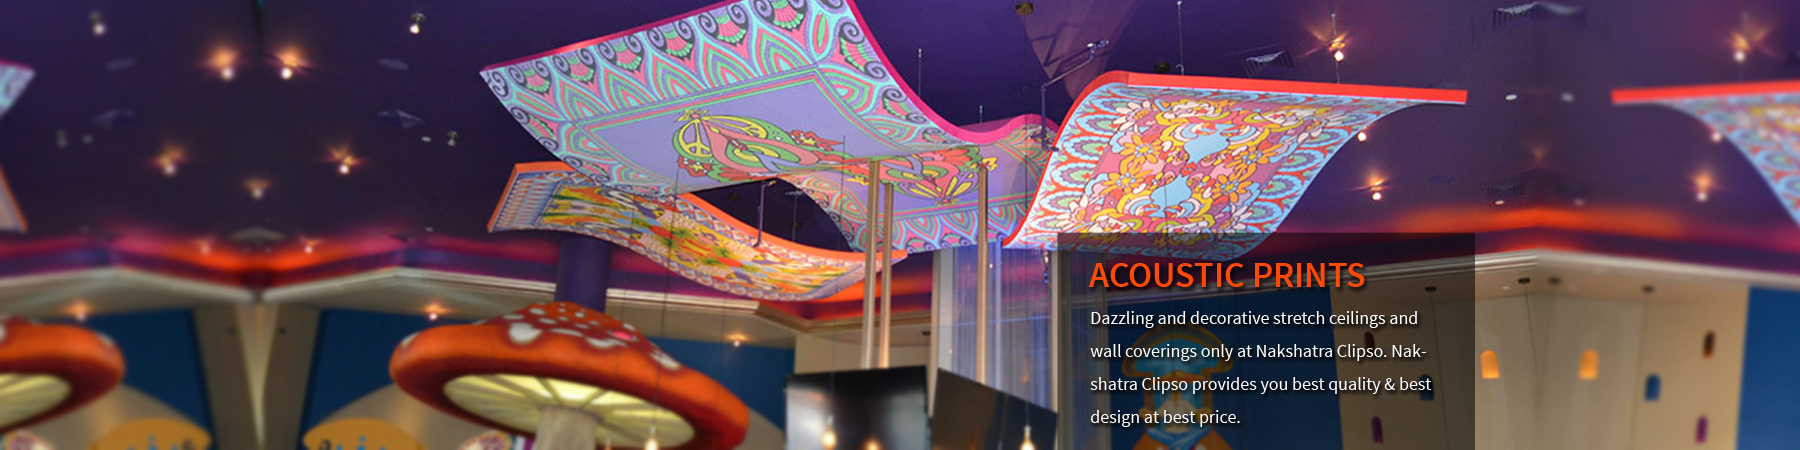 Acoustic Printed Stretch Ceilings and Wall Coverings